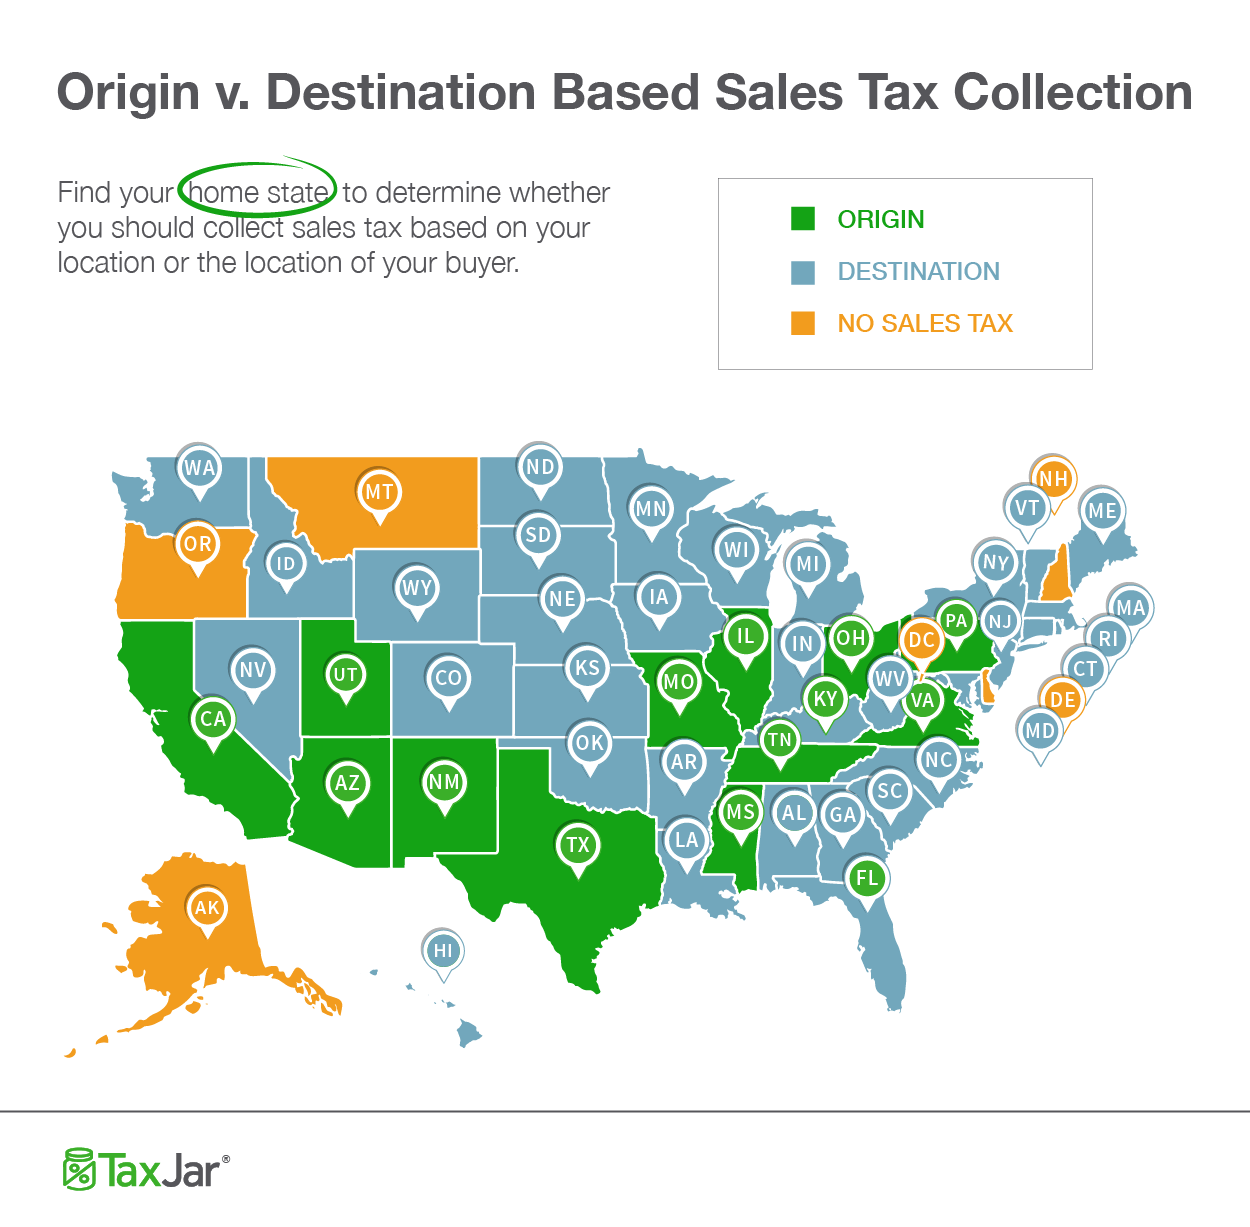 A map showing which states ask for origin vs. destination-based tax charges.